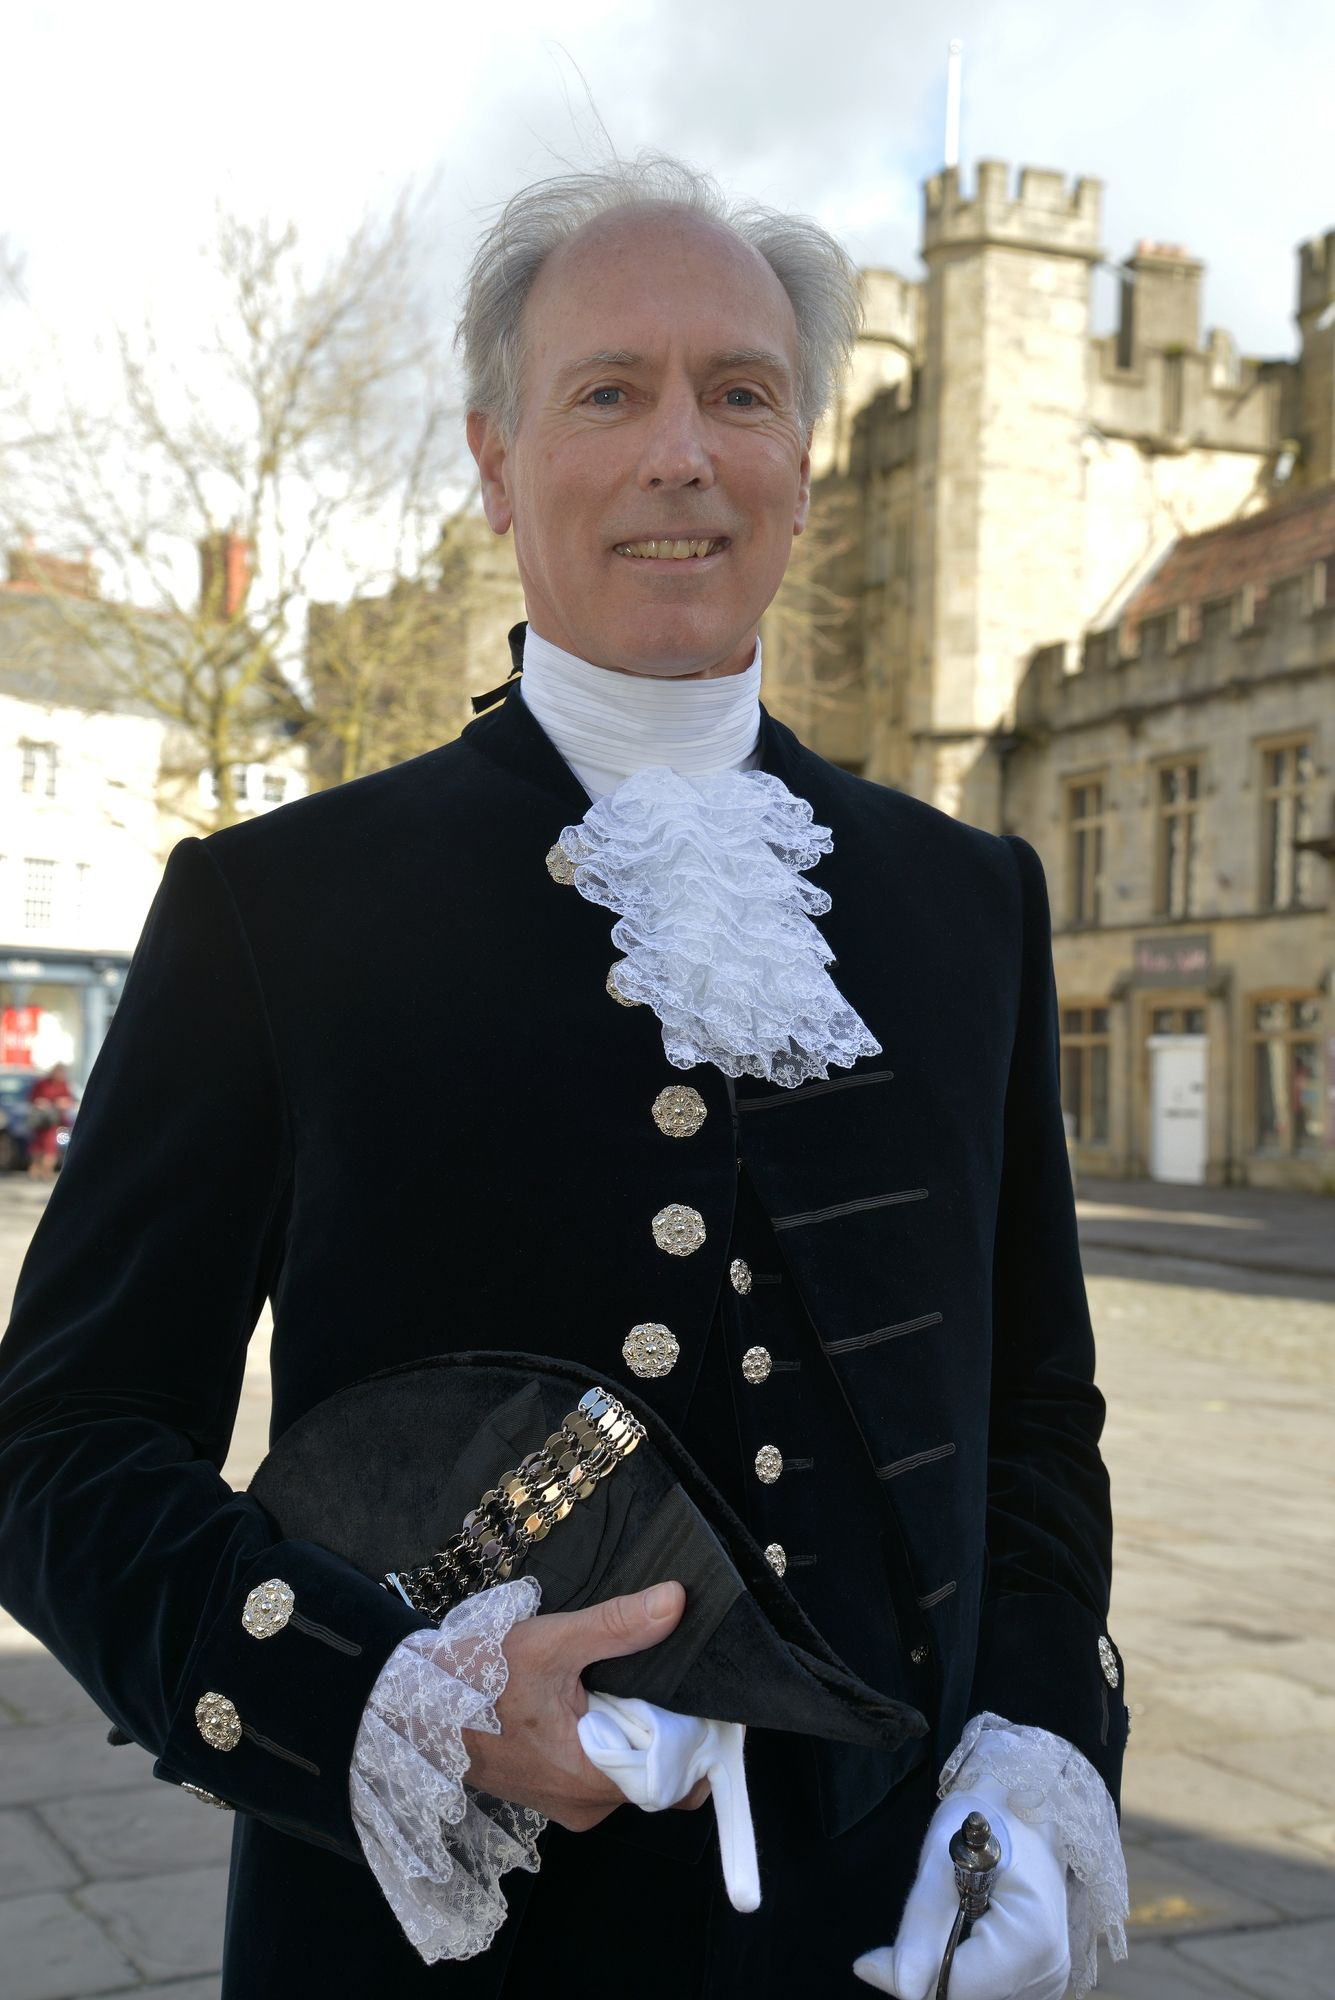 Richard Lloyd, High Sheriff of Somerset